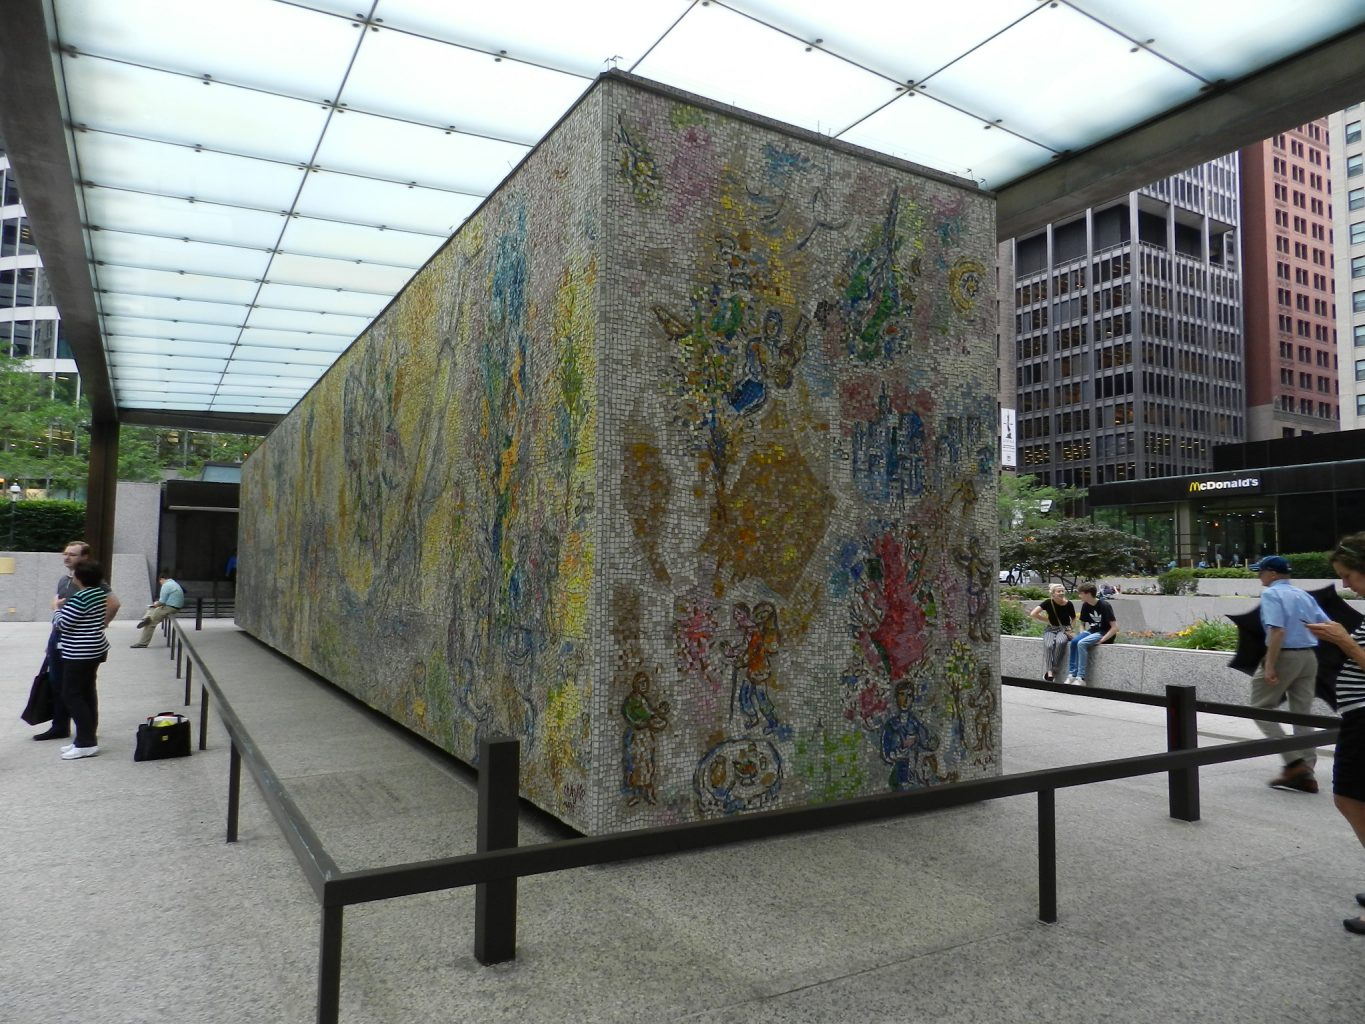 Marc Chagall's Four Seasons mosaic_ the monument.